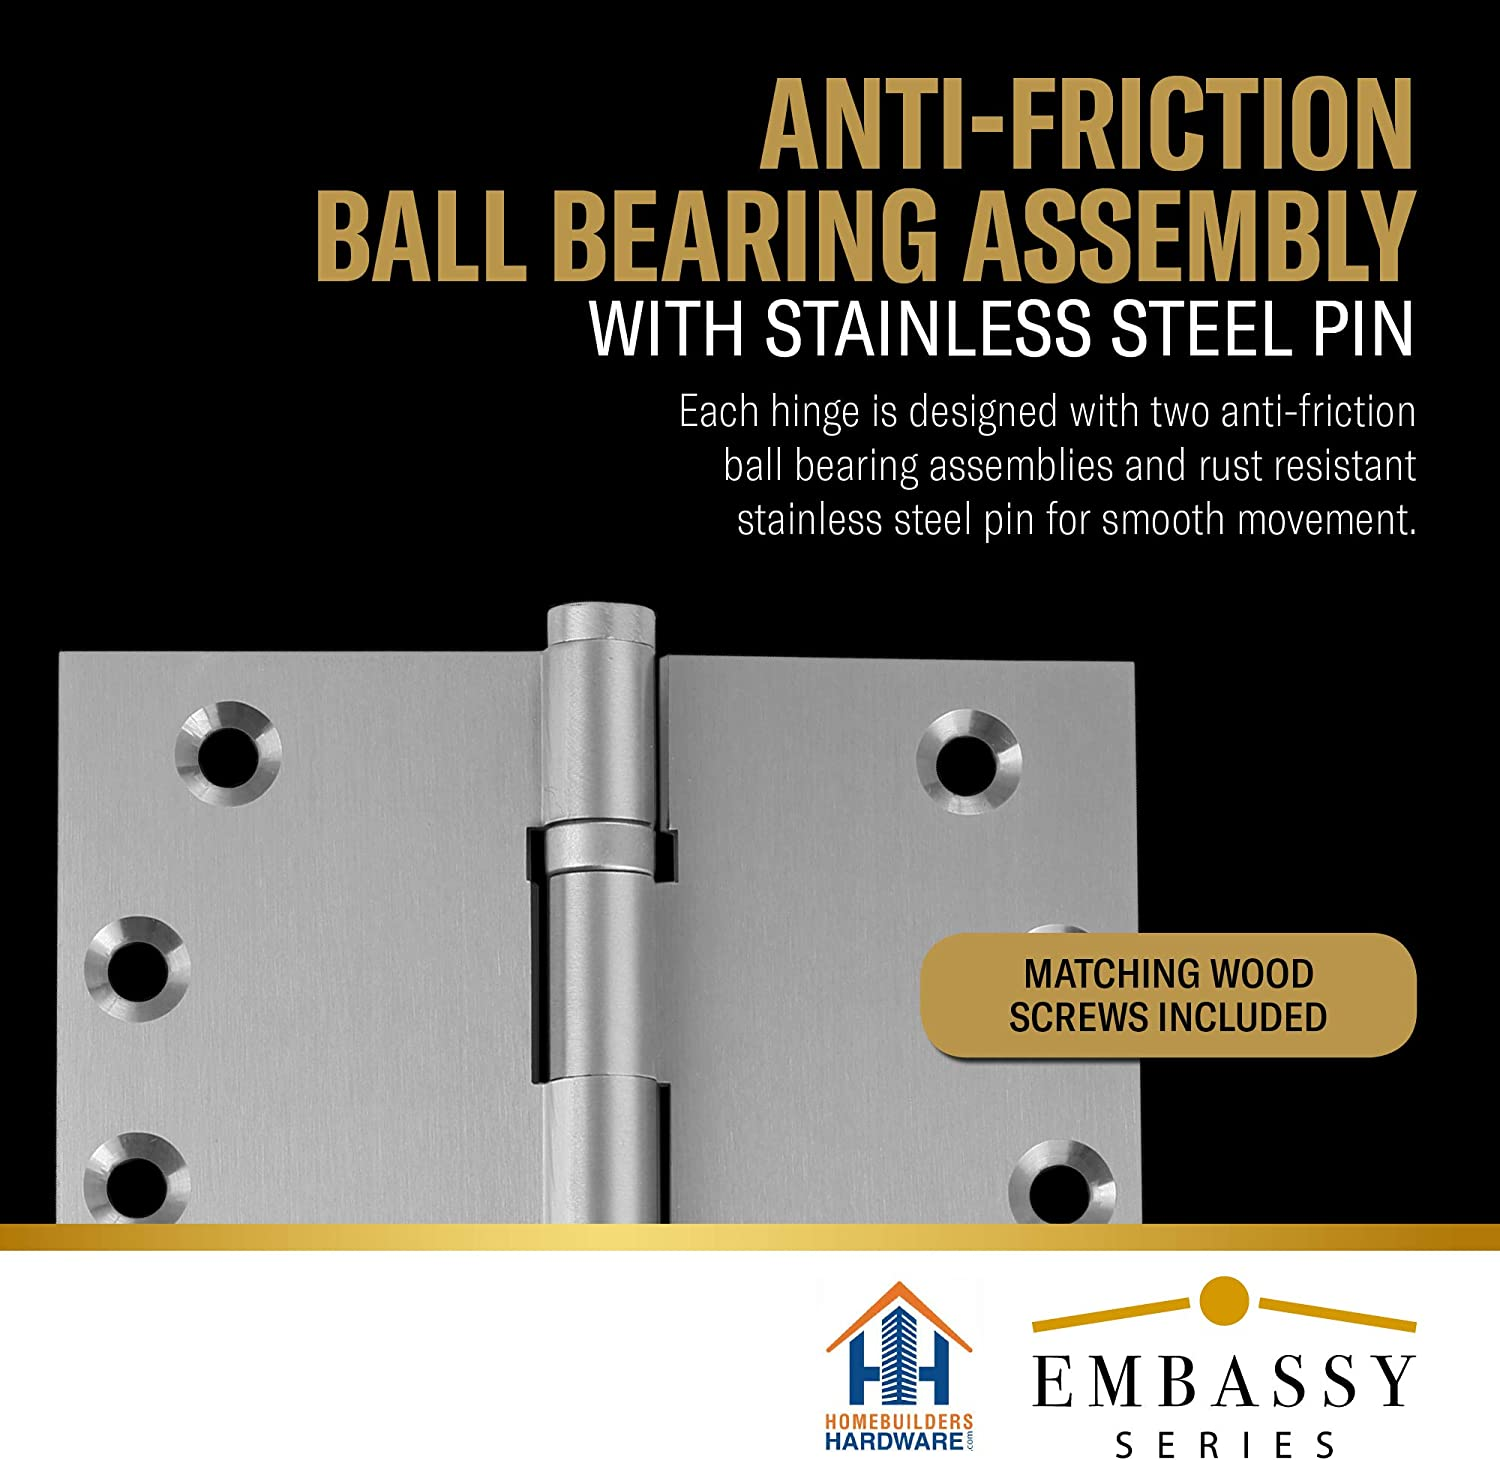 Ball//Urn//Button Tips Included US15 Stainless Steel Pin 2 Door Hinges 3.5 x 3.5 Extruded Solid Brass Ball Bearing Hinge Heavy Duty Satin Nickel Architectural Grade